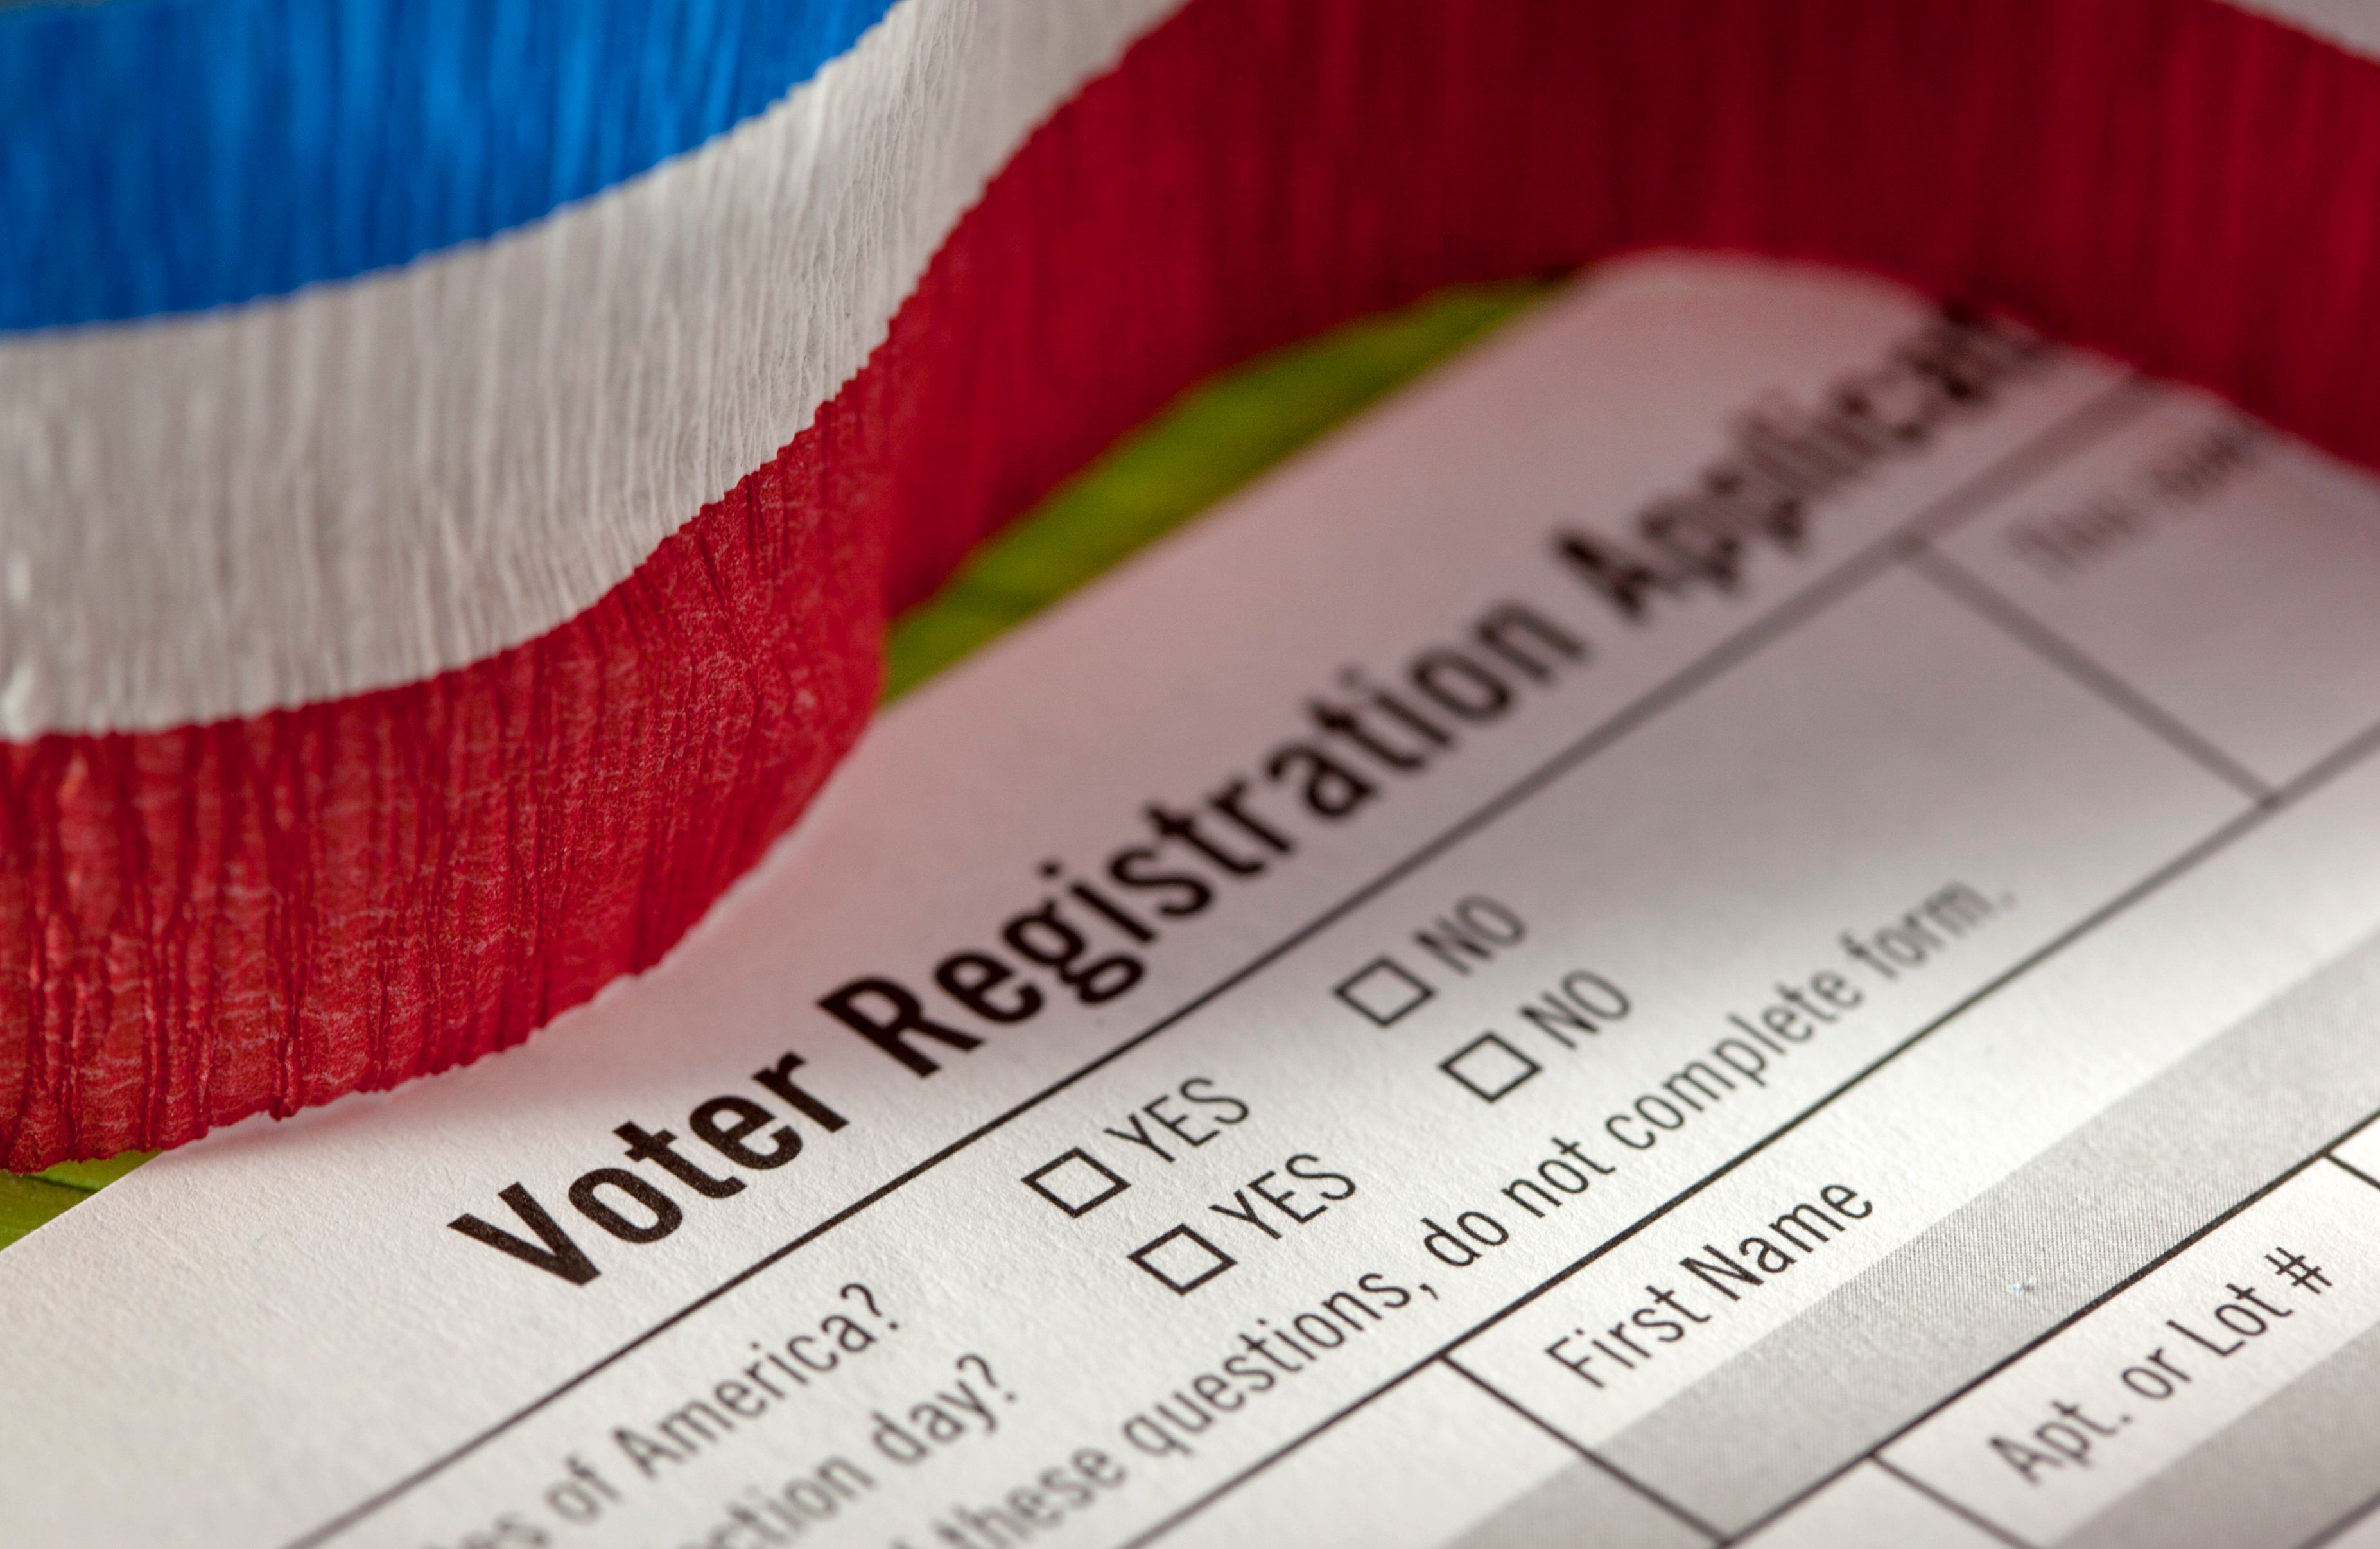 studio shot of voter registration form